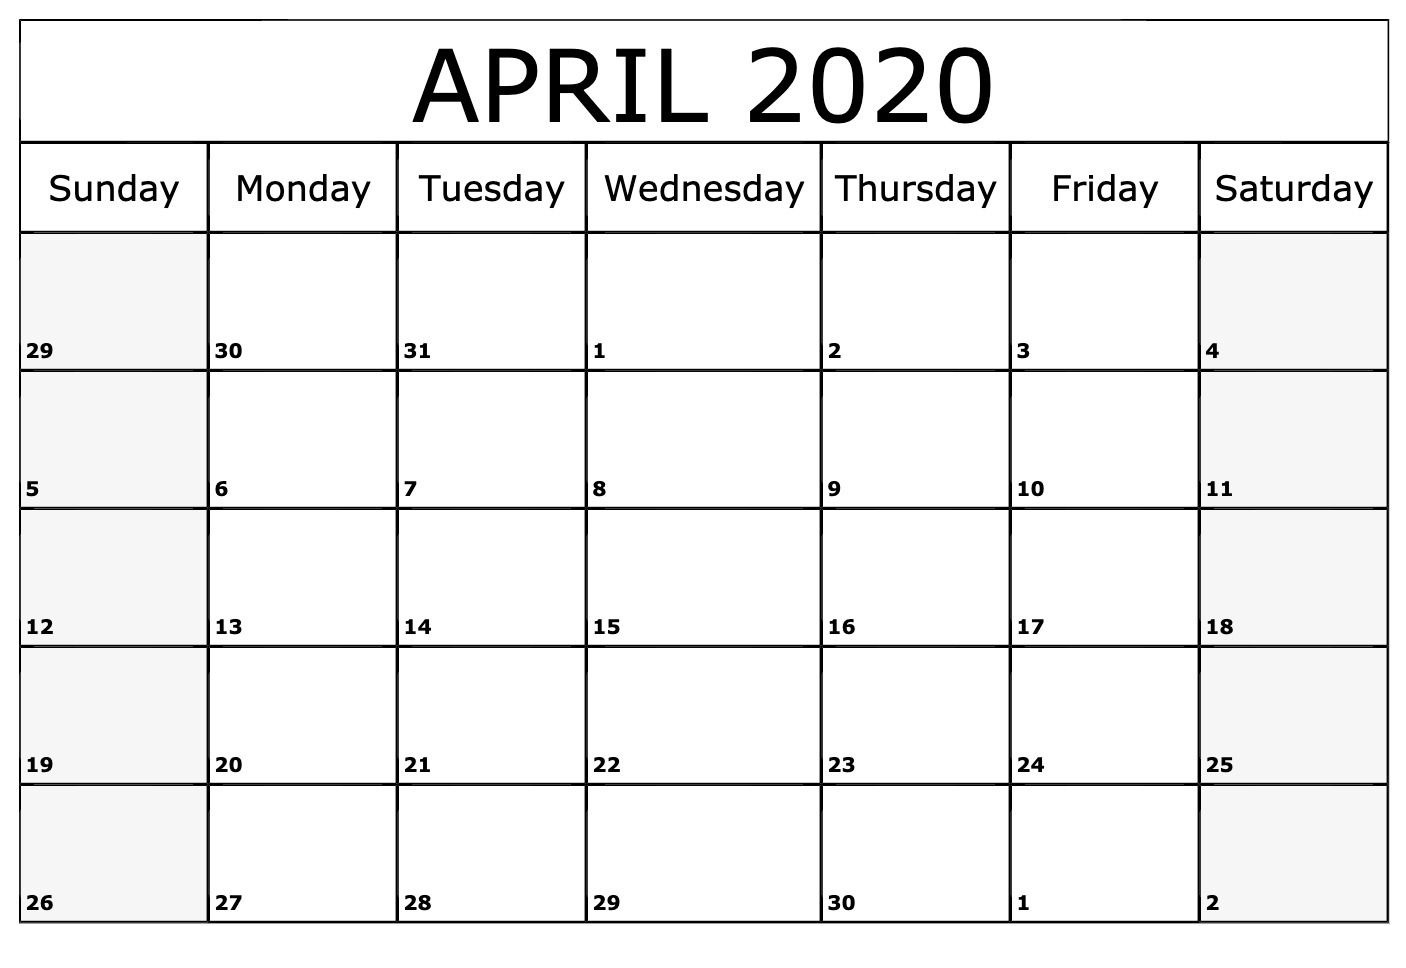 Blank Calendar Page For April 2020 | Free Printable Calendar regarding Free Printable April 2020 Calendar